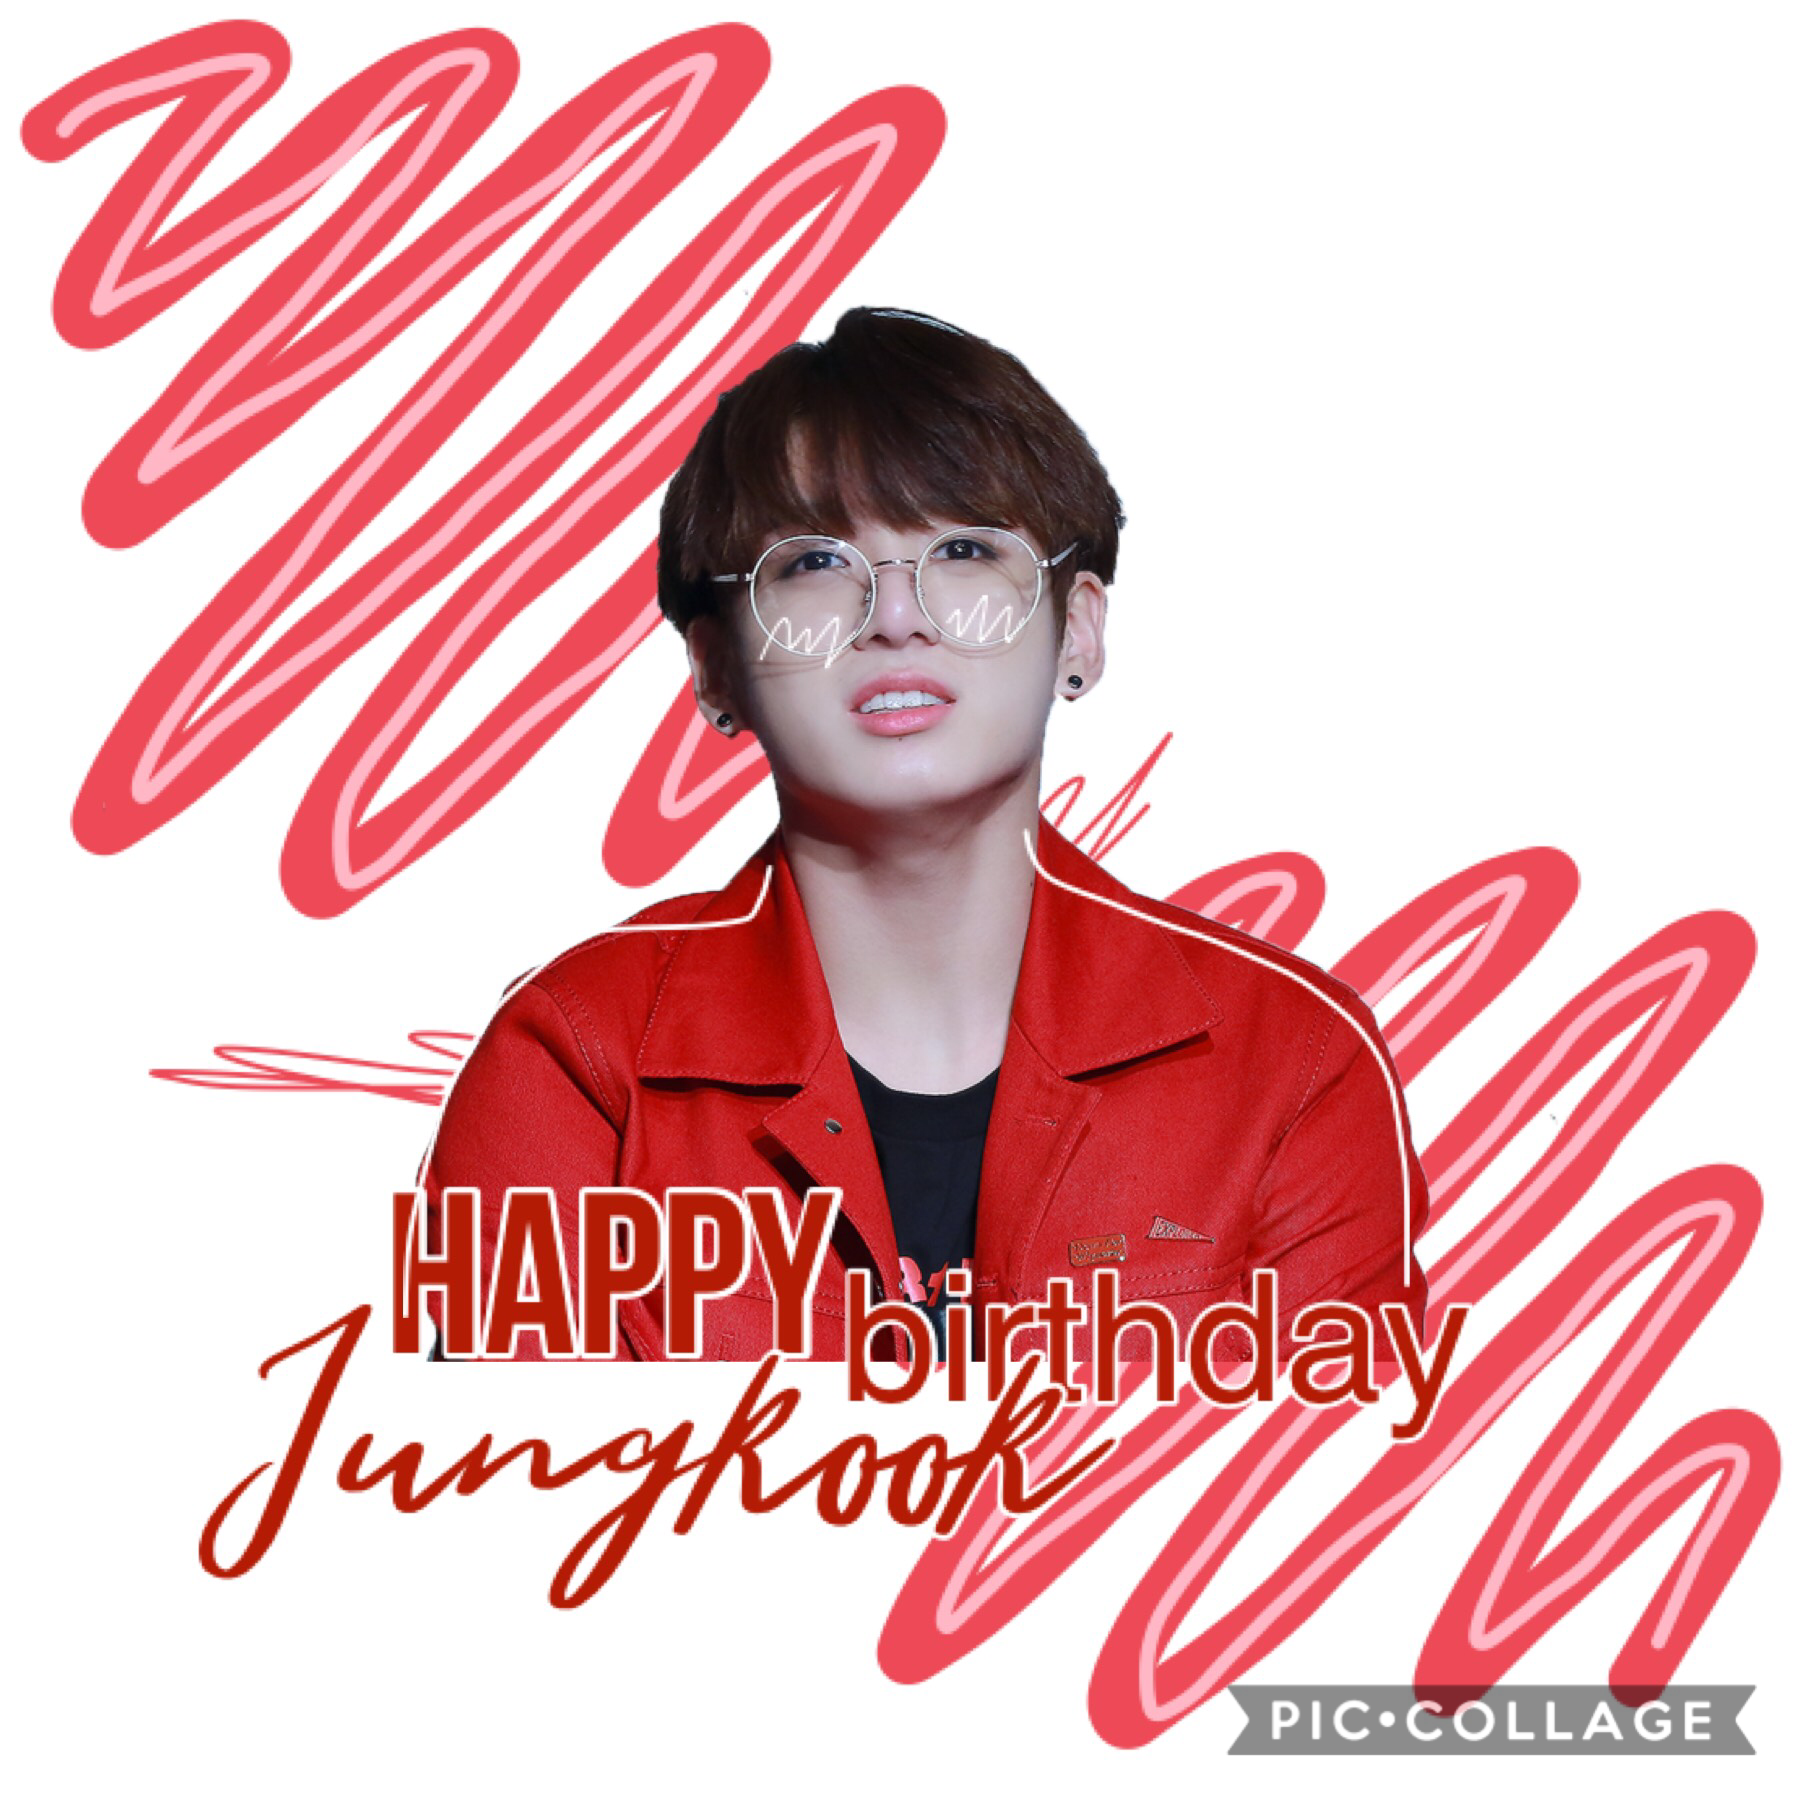 ❤️HAPPY BIRTHDAY JUNGKOOK, you are so precious, ARMY don't deserve you. Have a good day!💜💜💜